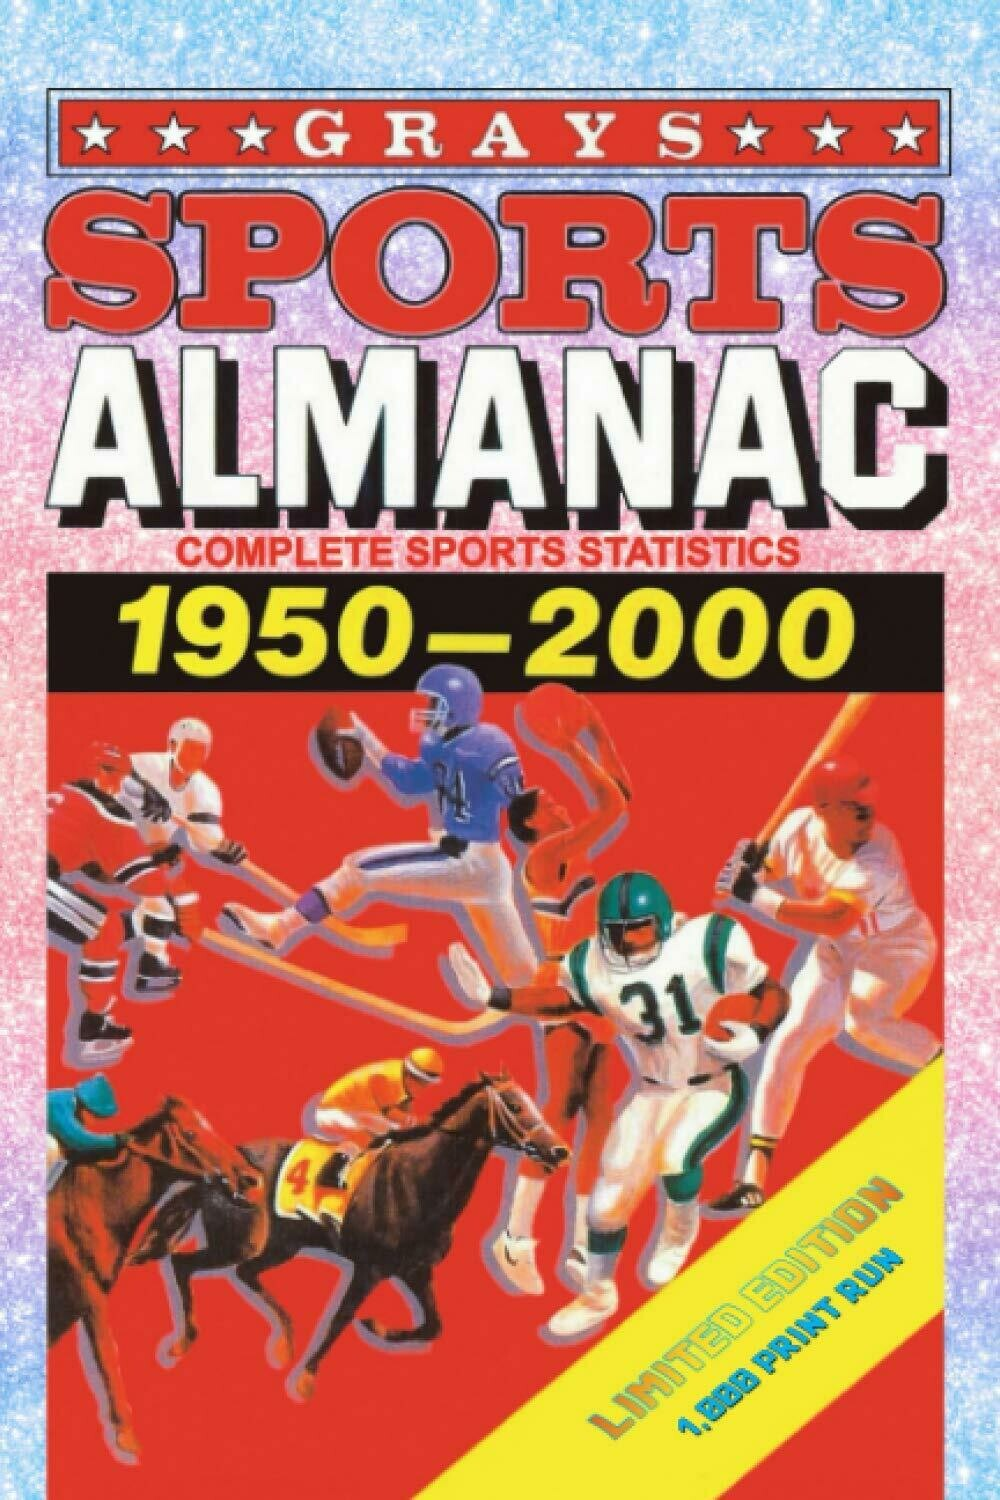 Grays Sports Almanac from Back to the Future [Rainbow Diamond Edition - LIMITED TO 1,000 PRINT RUN] Luxury Lined Journal Notebook Diary